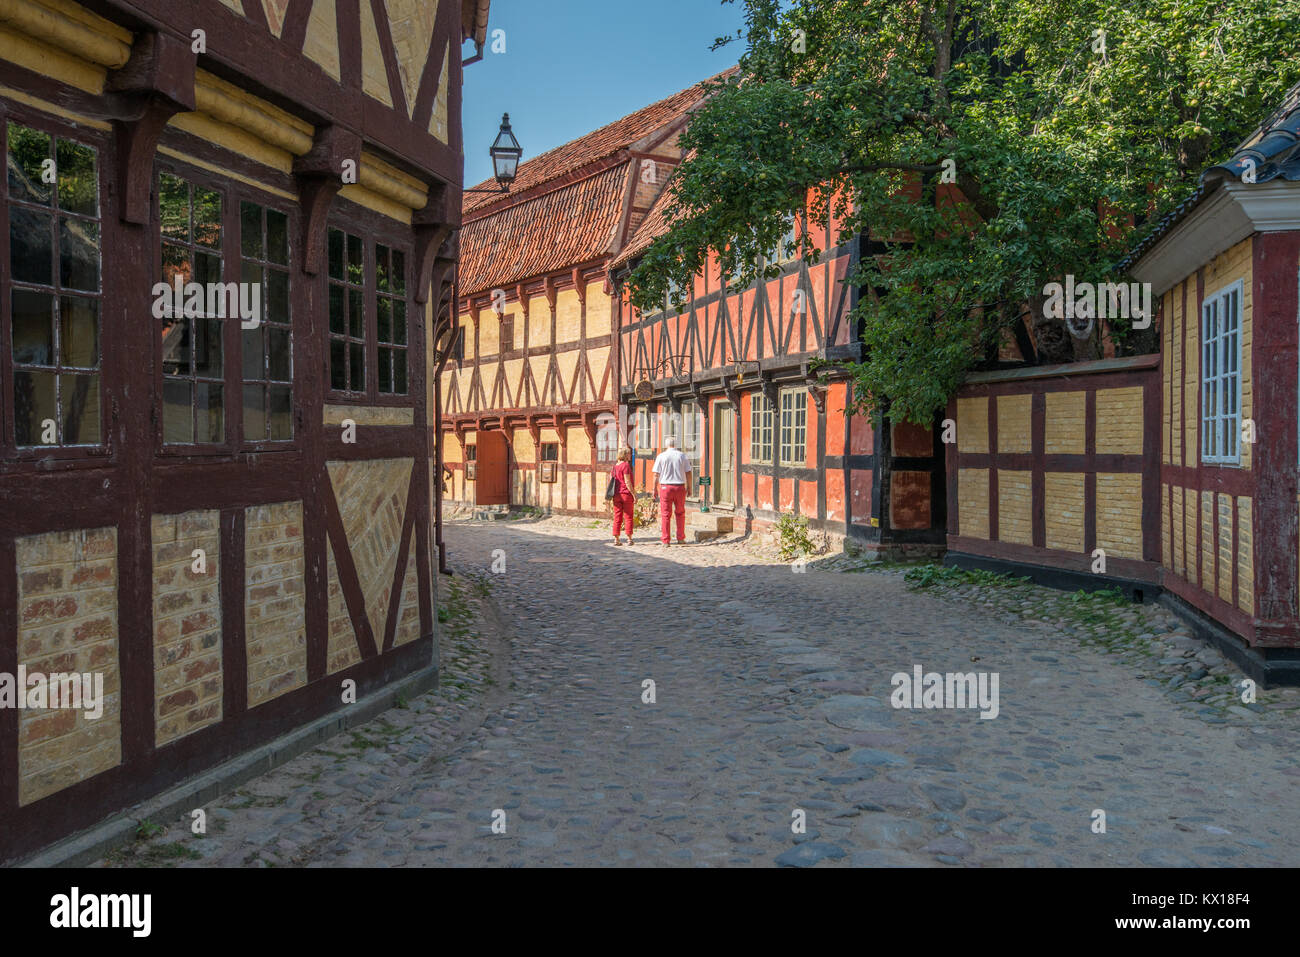 The Old Town in Aarhus is popular among tourists as it displays traditional Danish architecture from 16th century - Stock Image